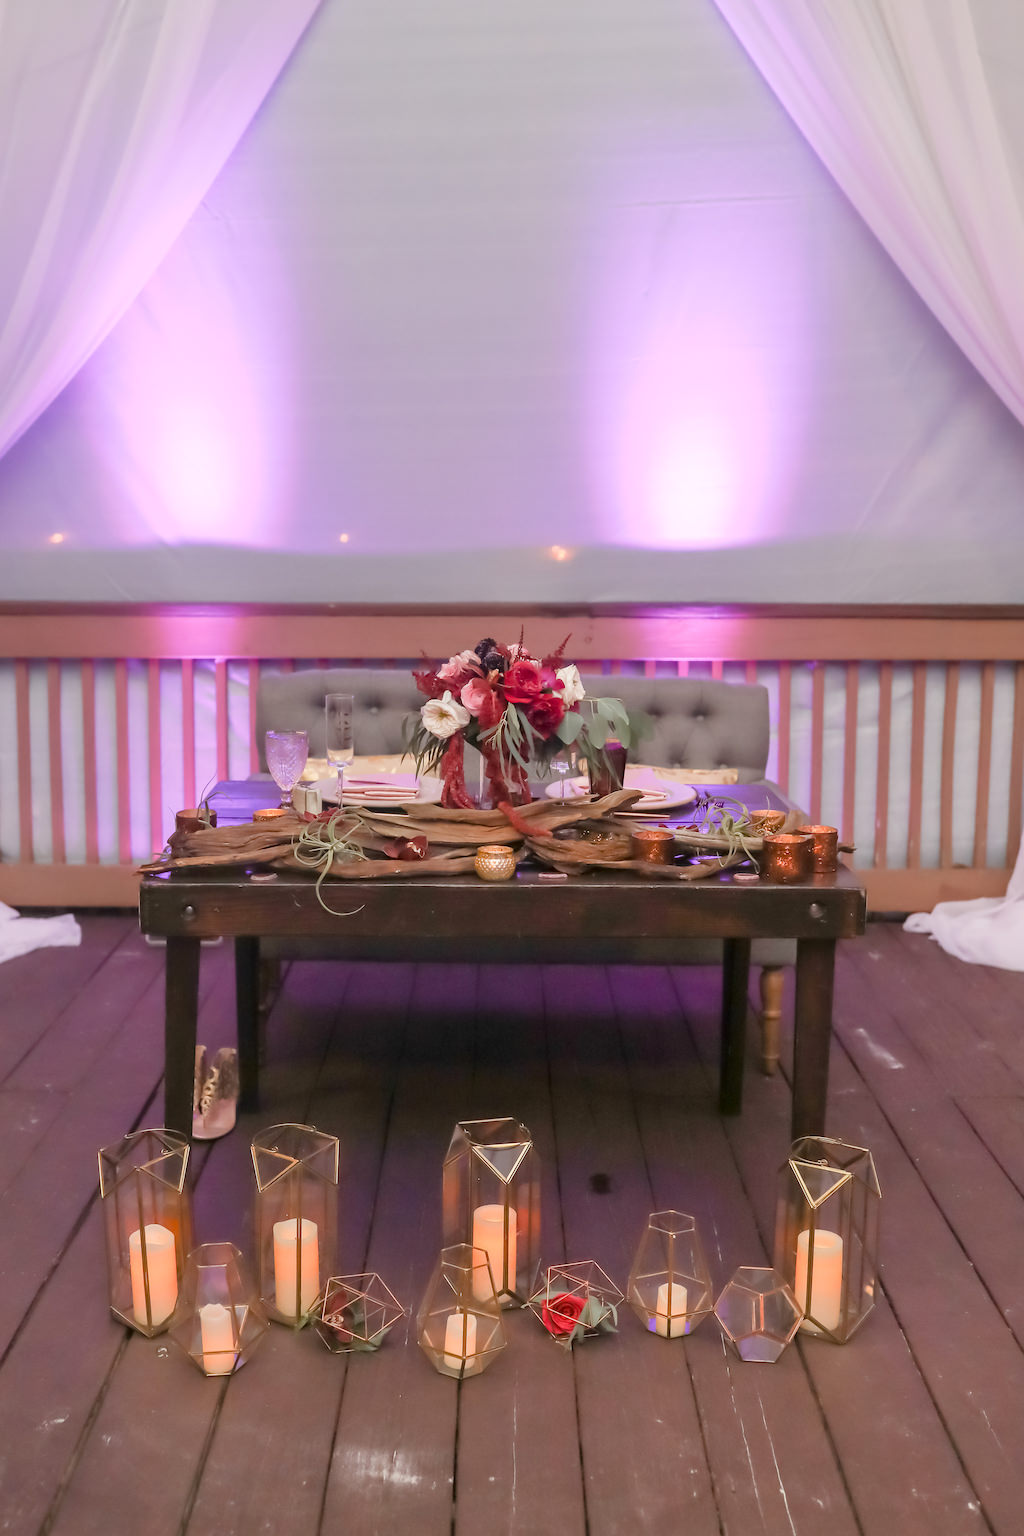 Travel Inspired Wedding Reception Decor, Wooden Sweetheart Table with Birchwood and Jewel Tone Purple, Pink, Plum, White and Greenery Floral Bouquet, Geometric Vases with Candles and Purple Uplighting | Tampa Bay Wedding Photographer Lifelong Photography Studios | Clearwater Beach Hotel Wedding Venue Hilton Clearwater Beach